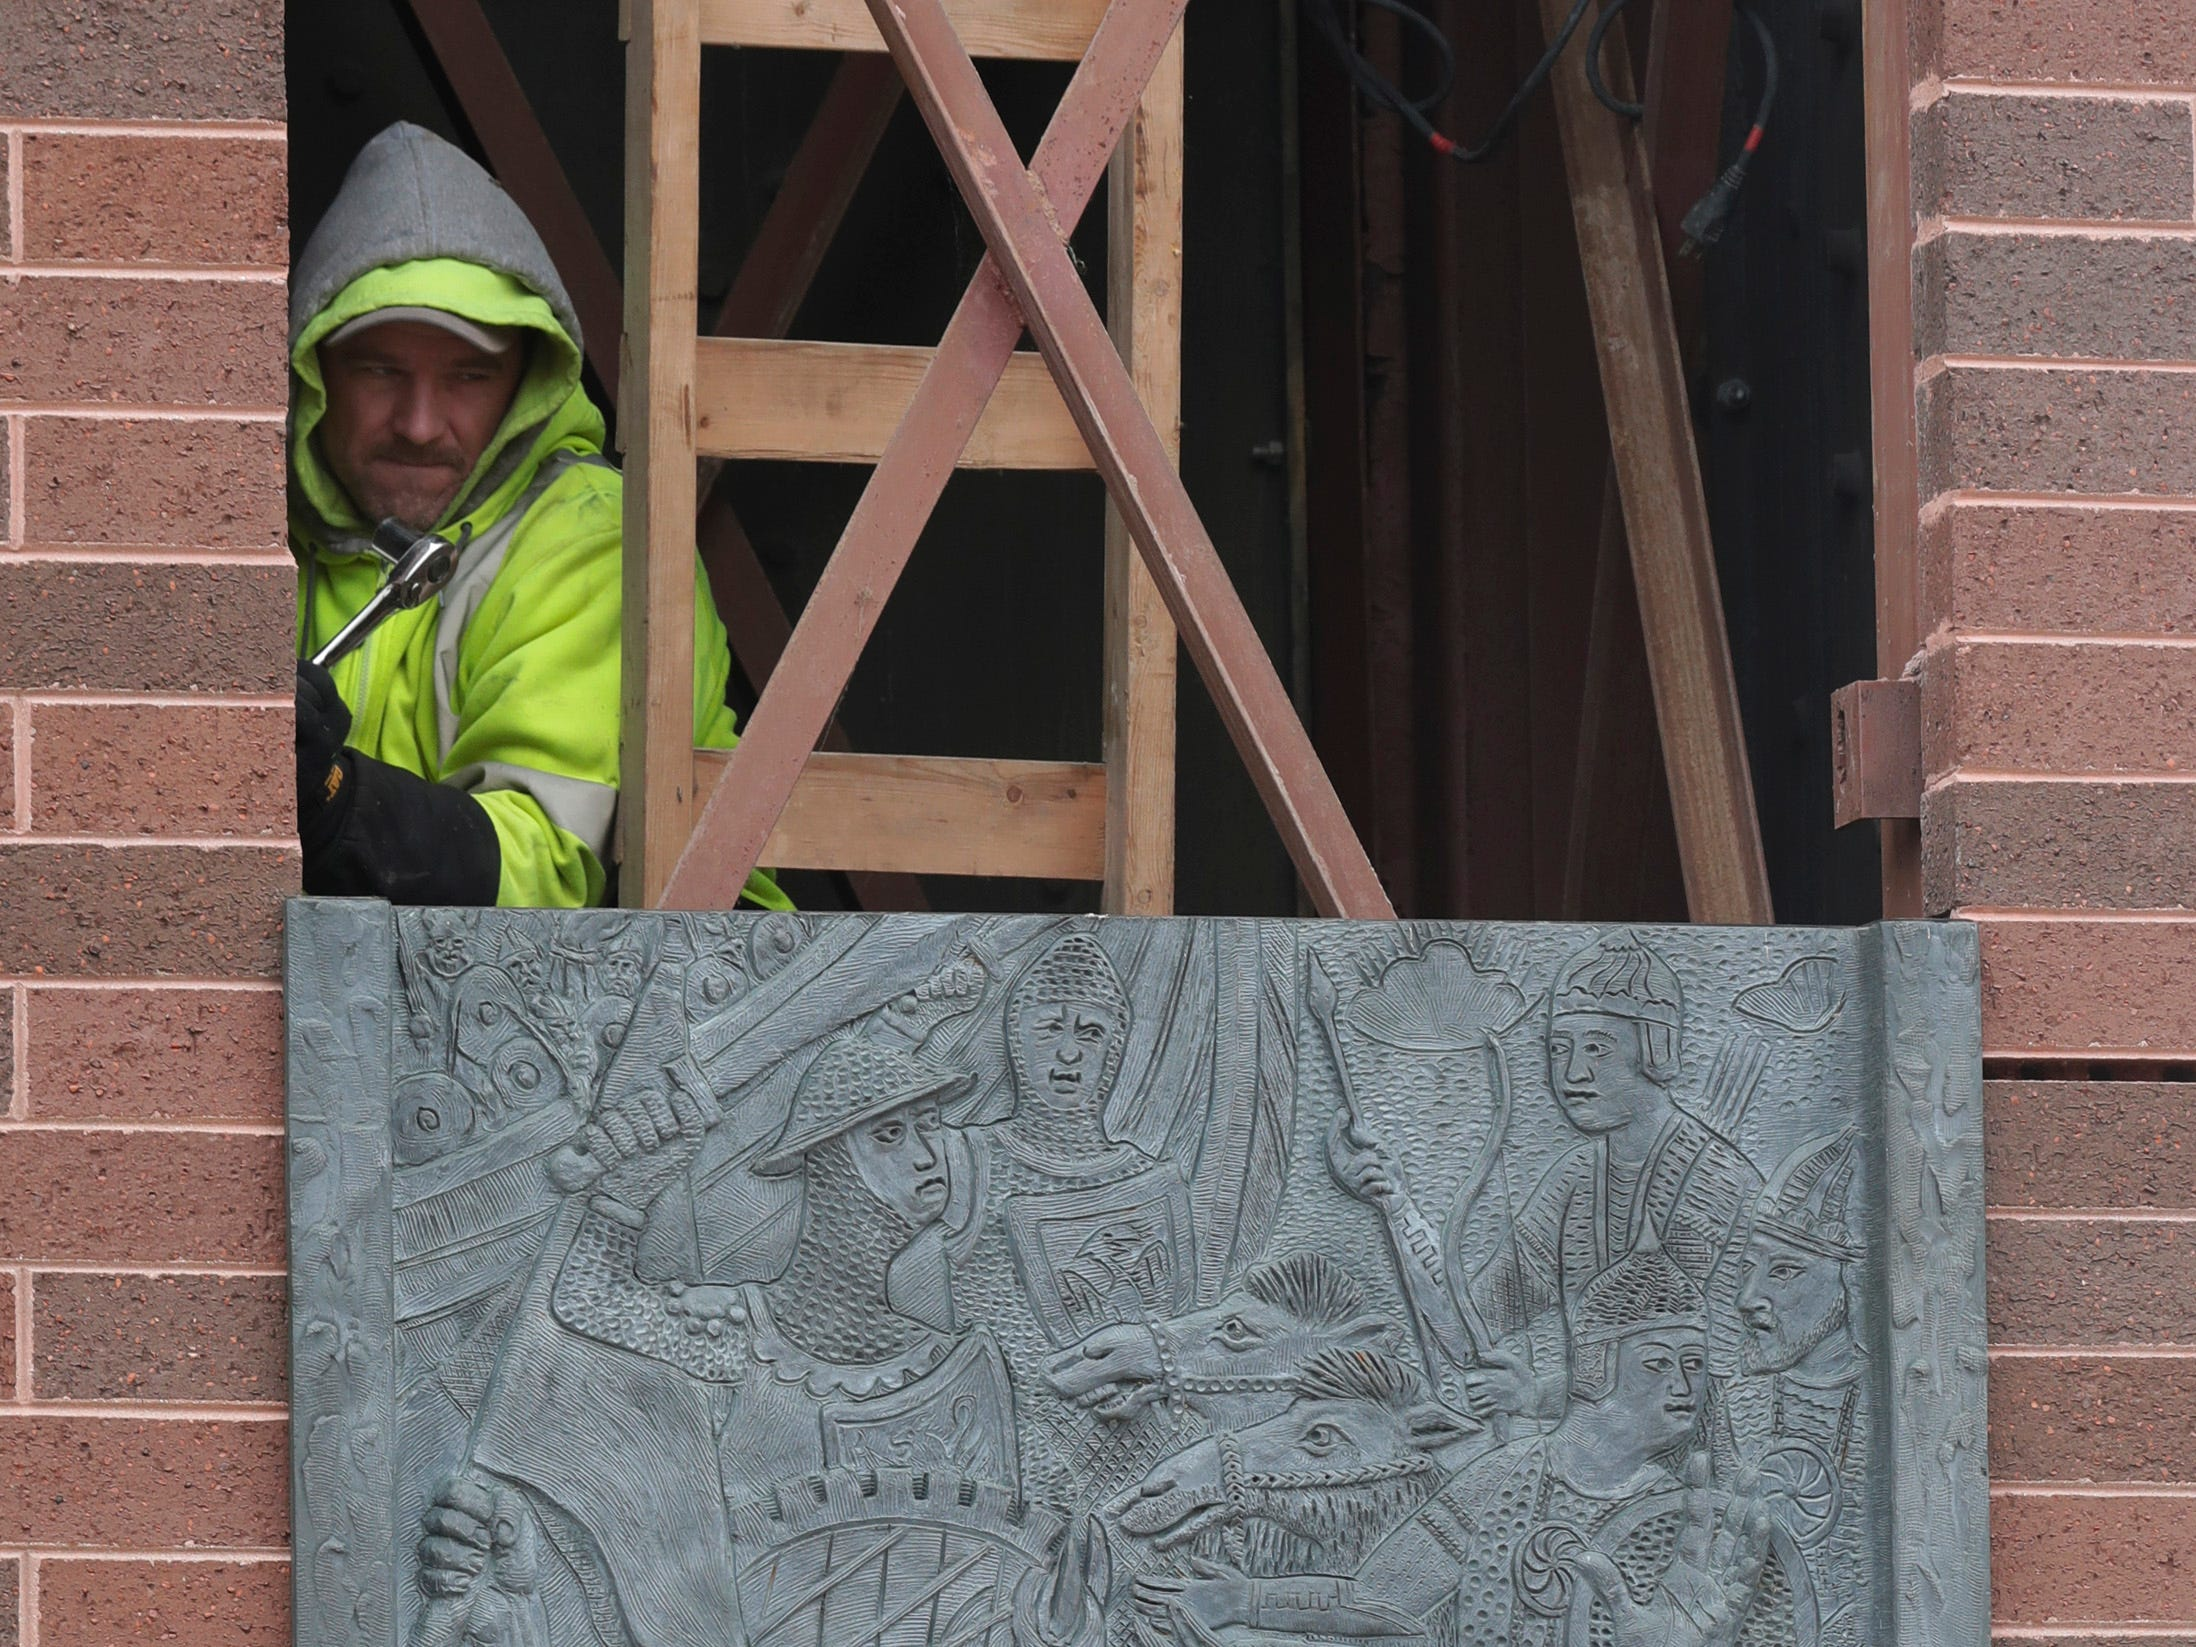 An employee from Koenig Constructions works to unbolt brass panels from the clock tower at Mead Public Library, Wednesday April 10, 2019, in Sheboygan, Wis. The city is repurposing the cast panels for an 8th Street display as part of a renovations project.